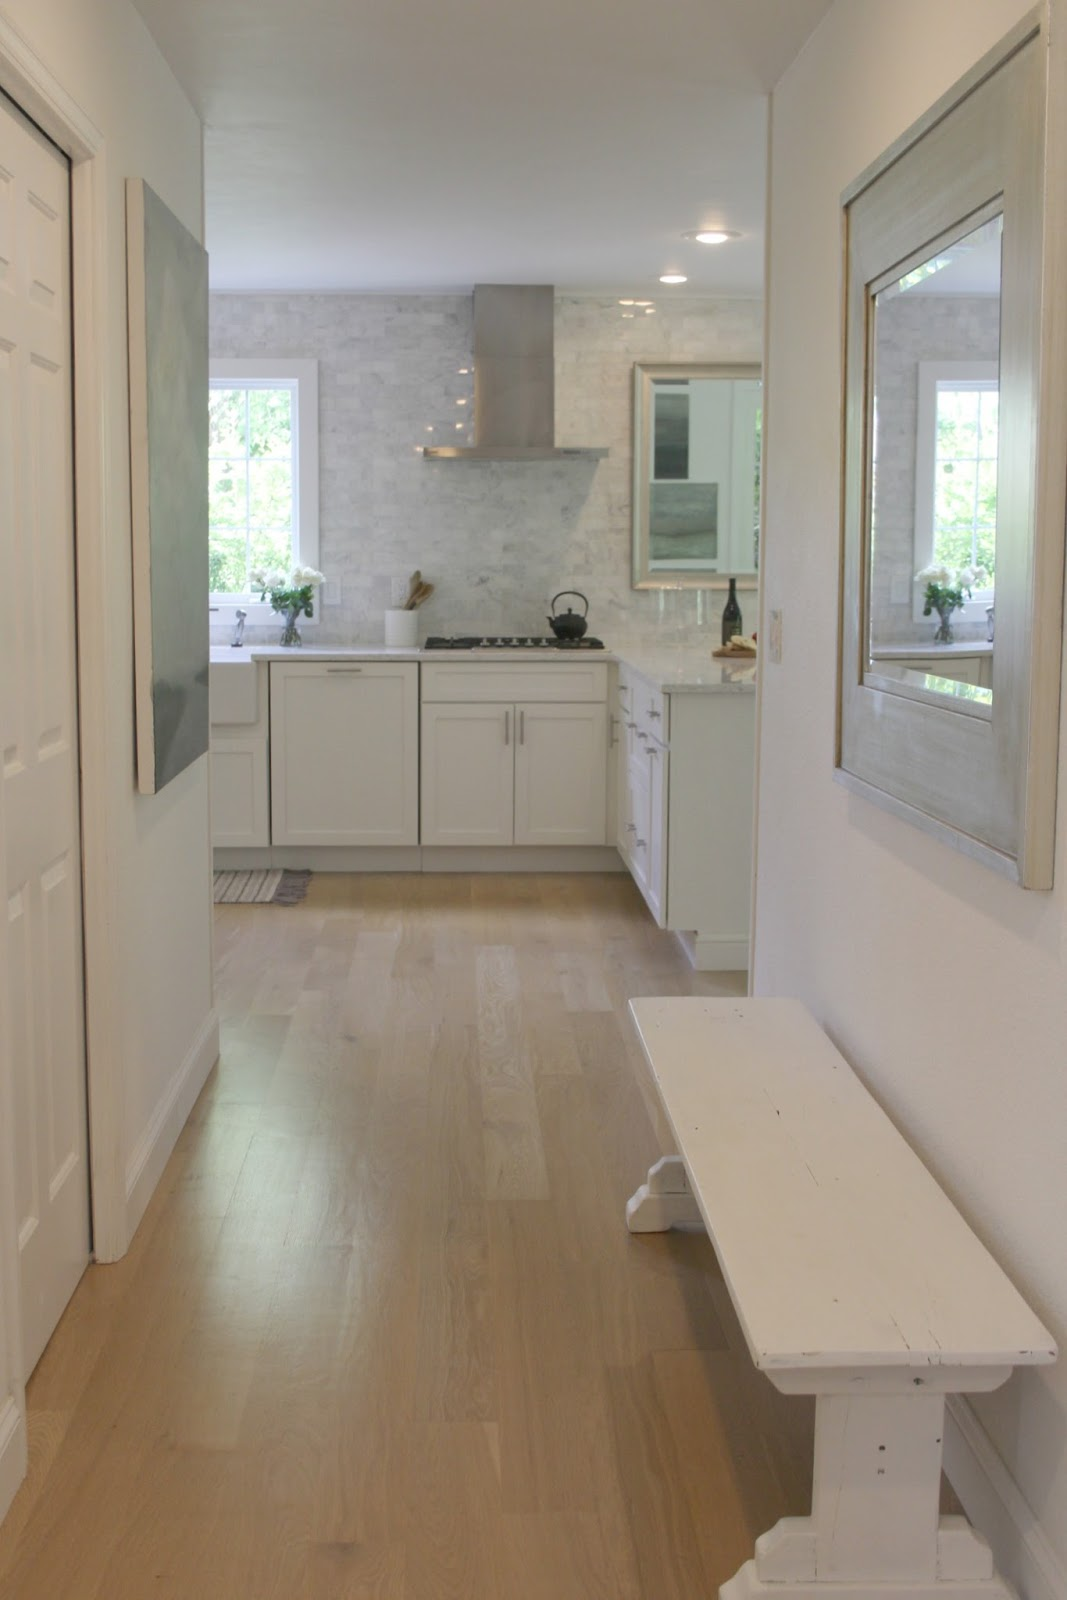 View of hallway adjacent to white modern farmhouse kitchen with white oak hardwood flooring and marble subway tile. Desgn by Hello Lovely Studio. #whitekitchen #whitedecor #kitchendecor #farmbench #shakercabinets #whitecabinets #serene #hellolovelystudio #modernfarmhouse #whitefarmhouse #farmhousekitchen